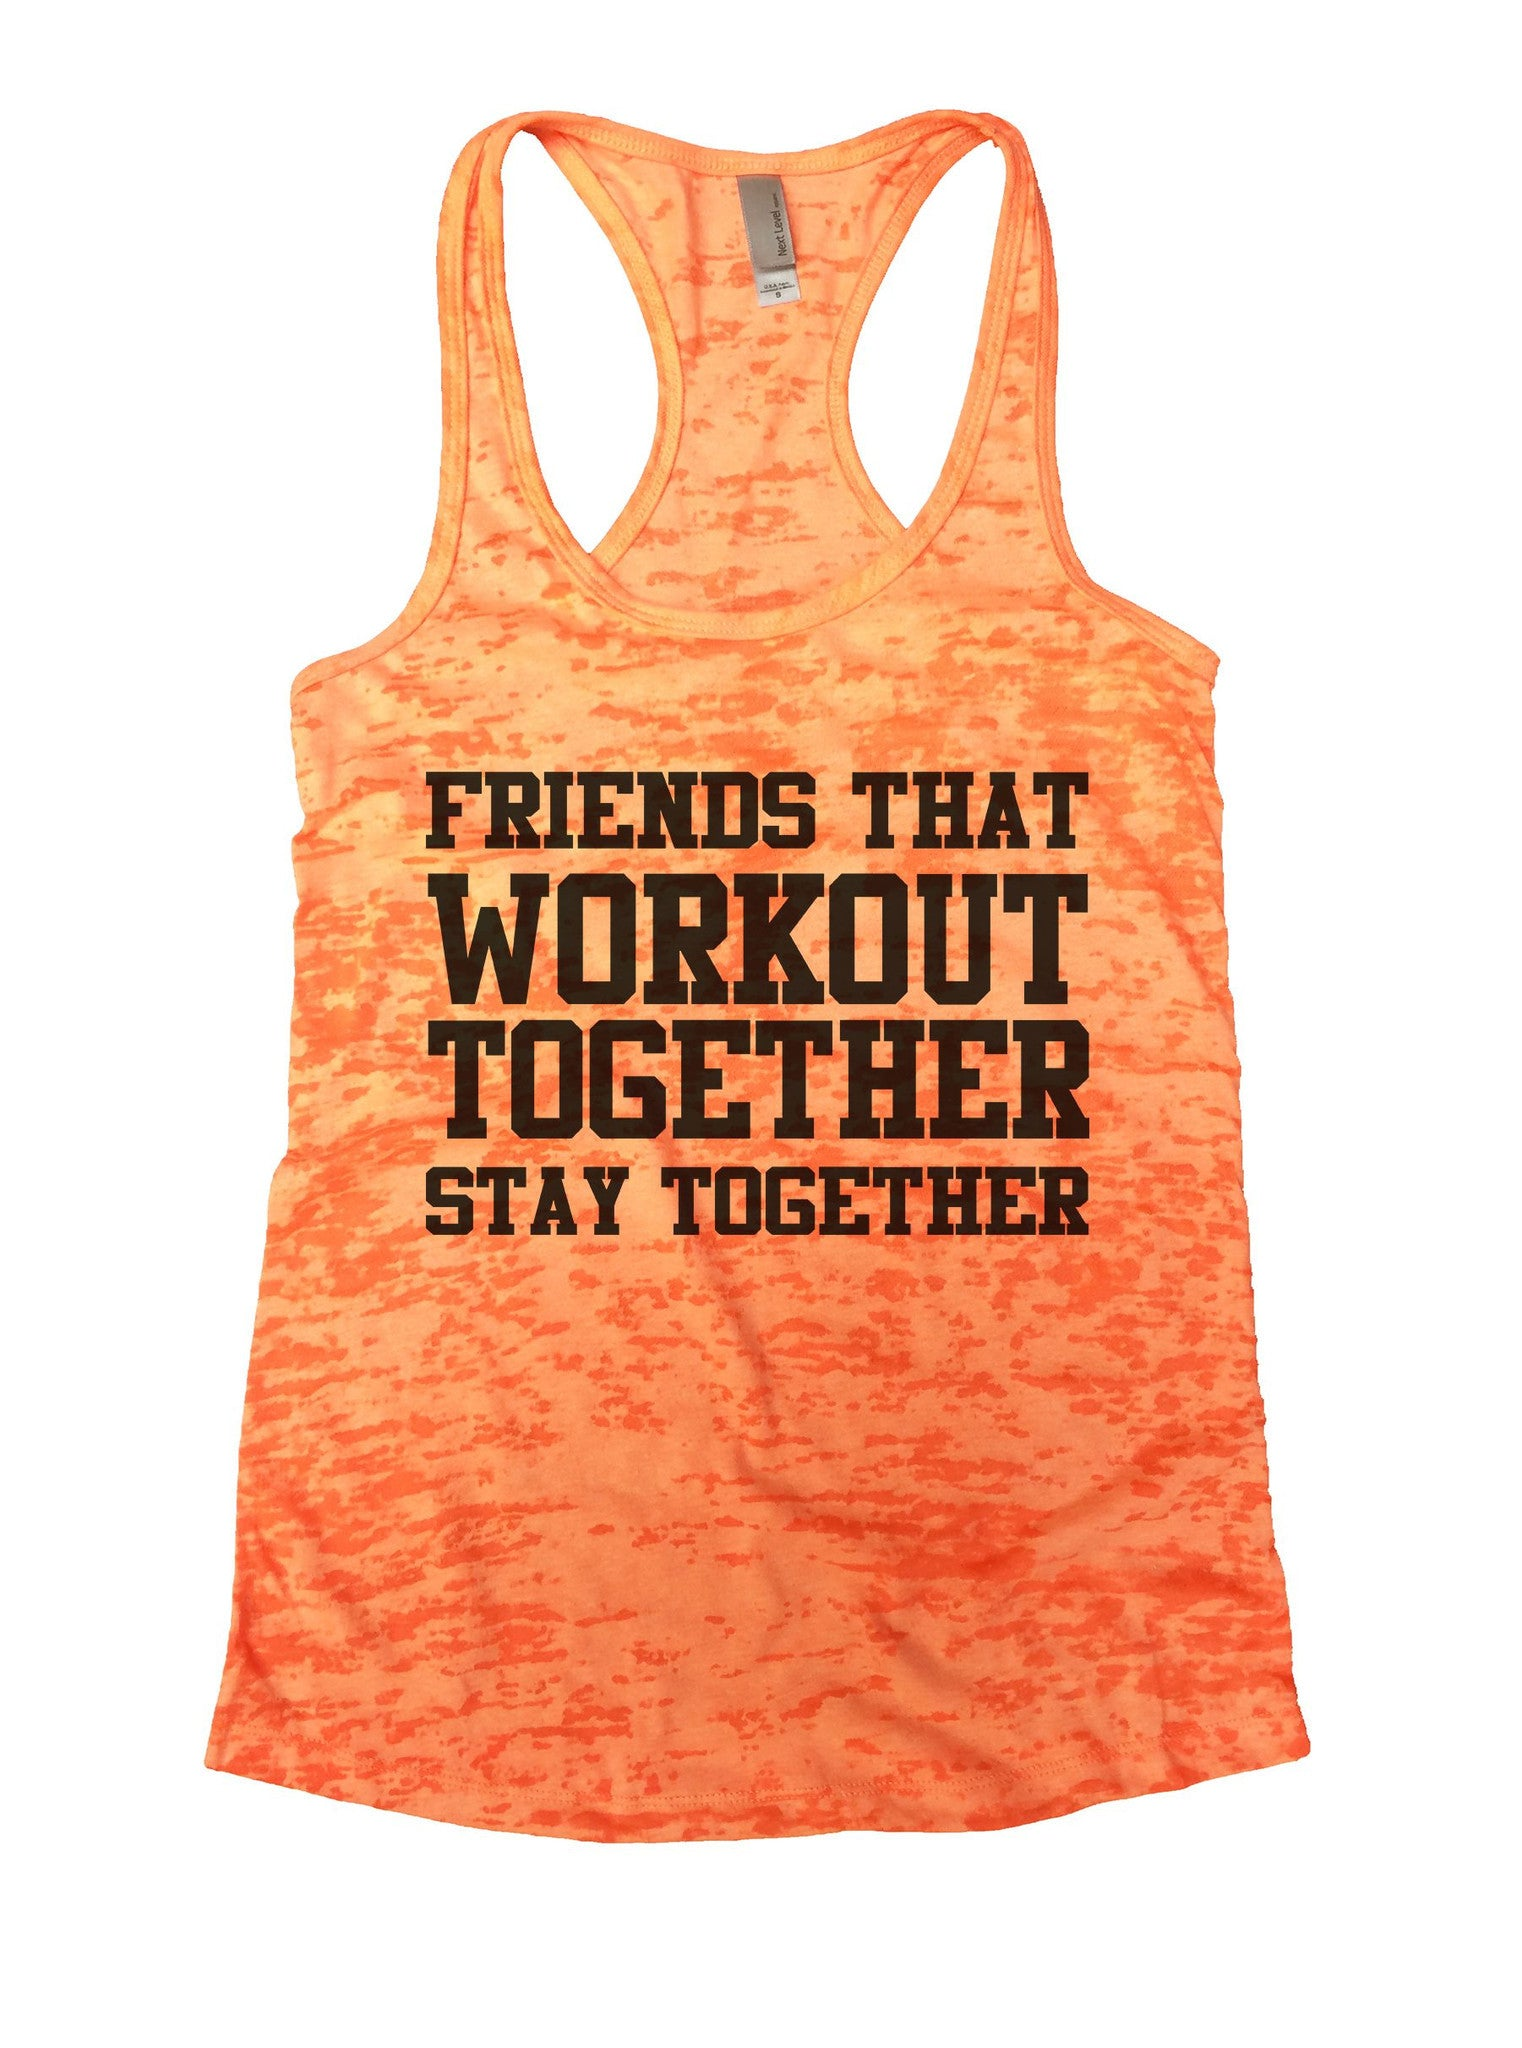 Friends That Workout Together Stay Together Burnout Tank Top By BurnoutTankTops.com - 847 - Funny Shirts Tank Tops Burnouts and Triblends  - 3